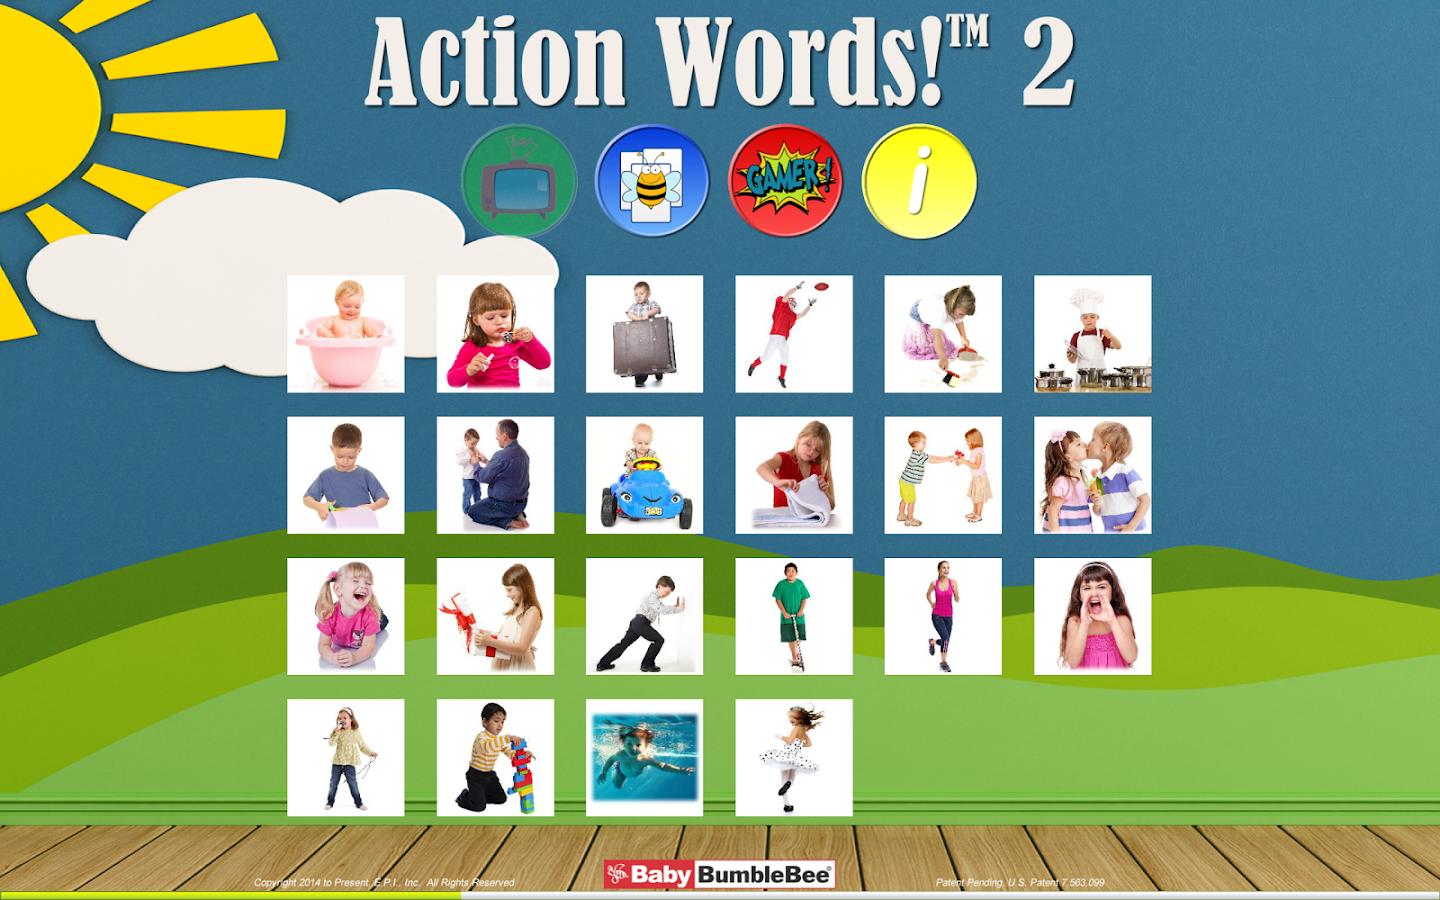 action words 2 flashcards android apps on google play action words 2 flashcards screenshot